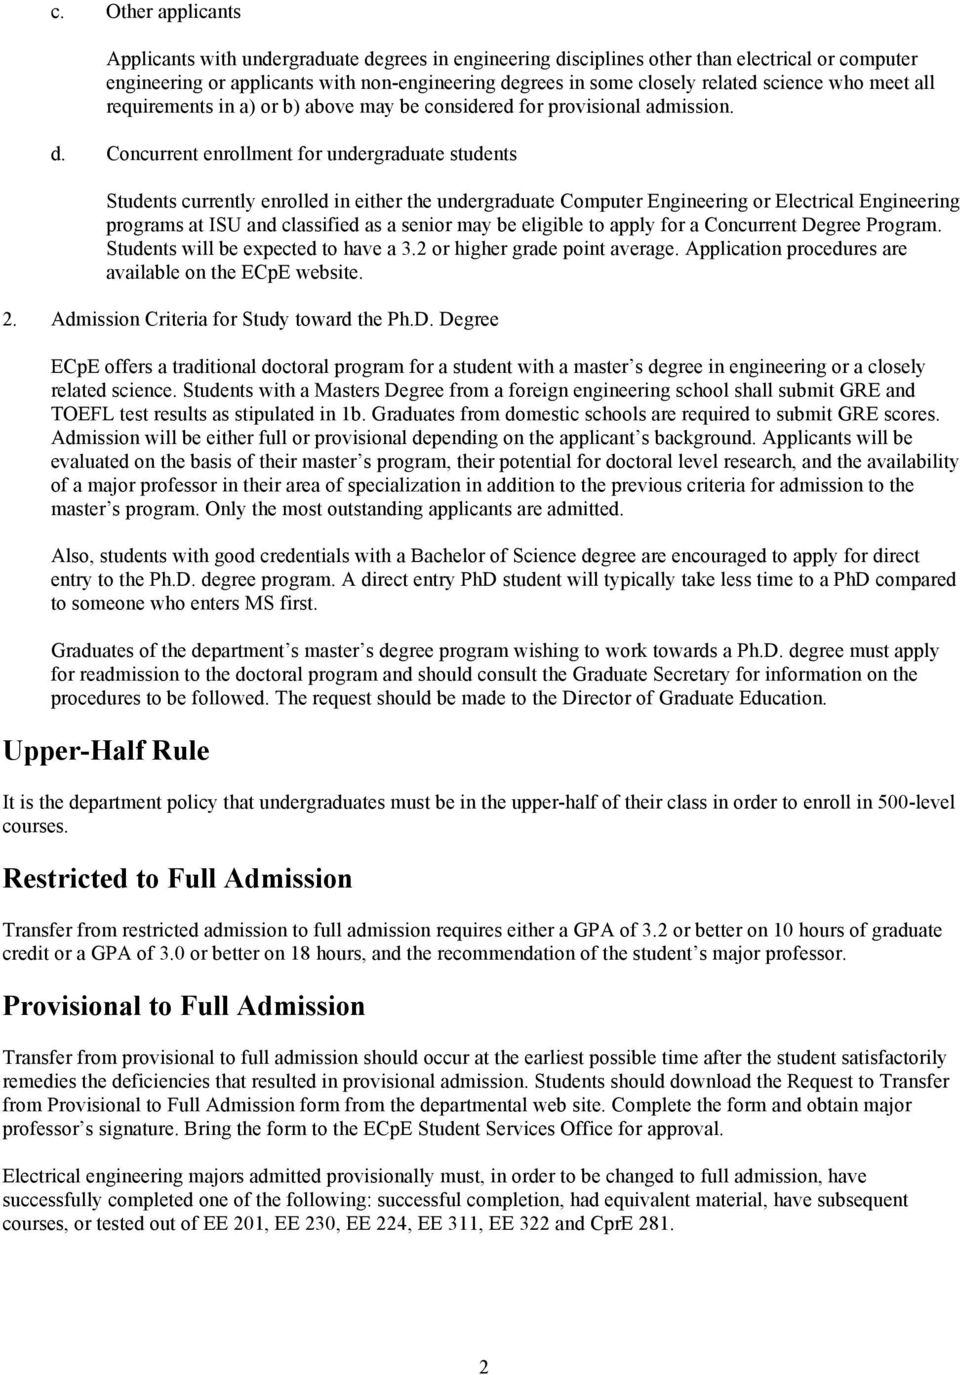 Concurrent enrollment for undergraduate students Students currently enrolled in either the undergraduate Computer Engineering or Electrical Engineering programs at ISU and classified as a senior may